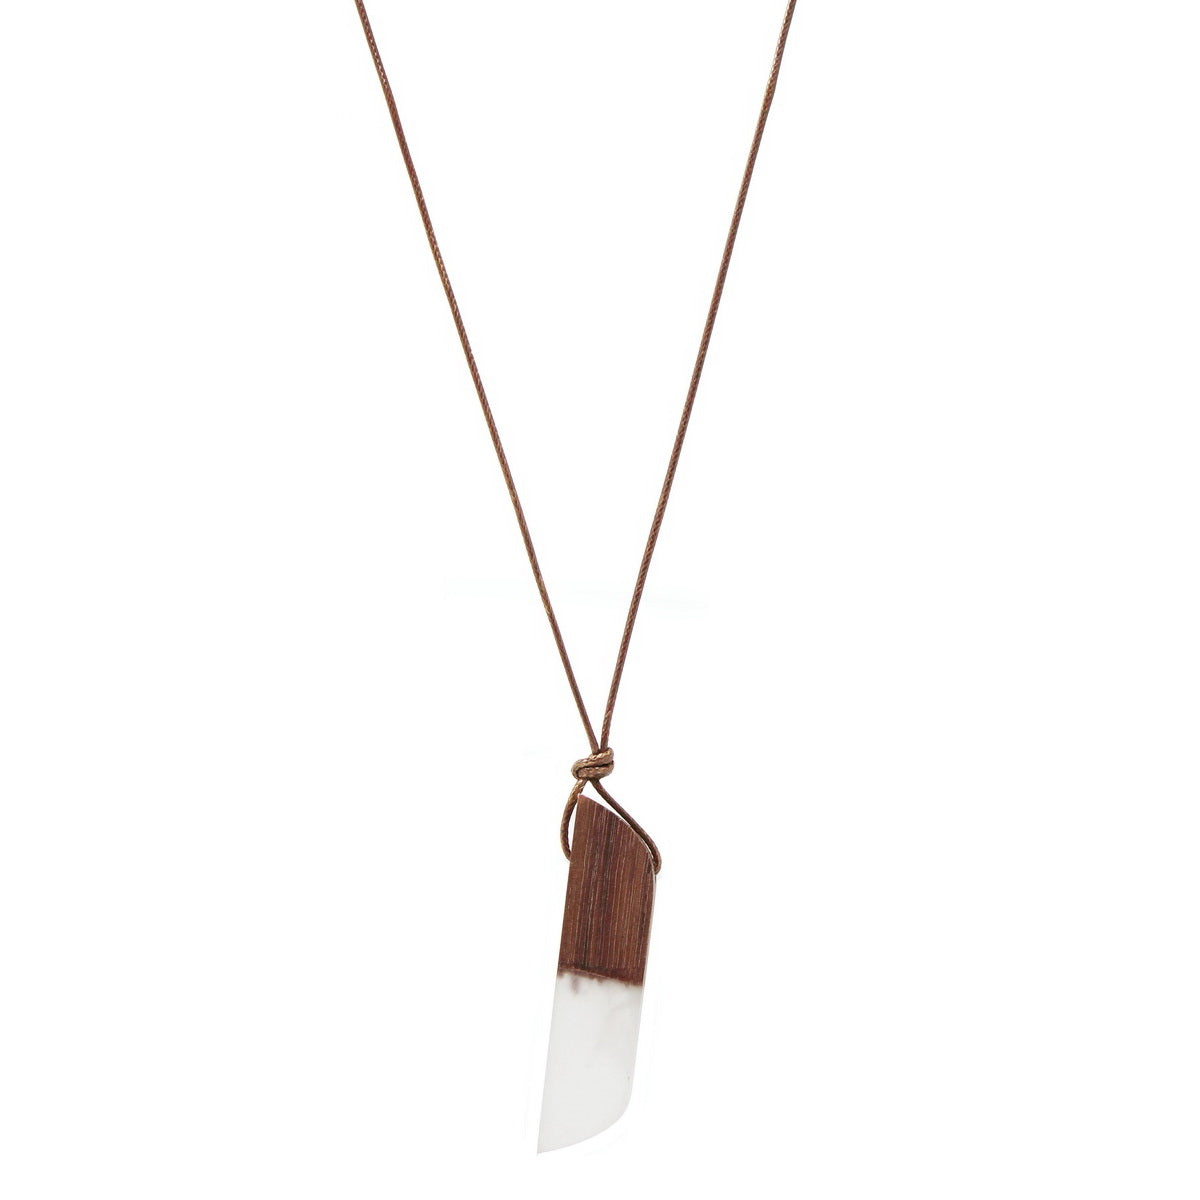 Geometric Acetate And Wood Blend Bar Pendant Long Cord Necklace